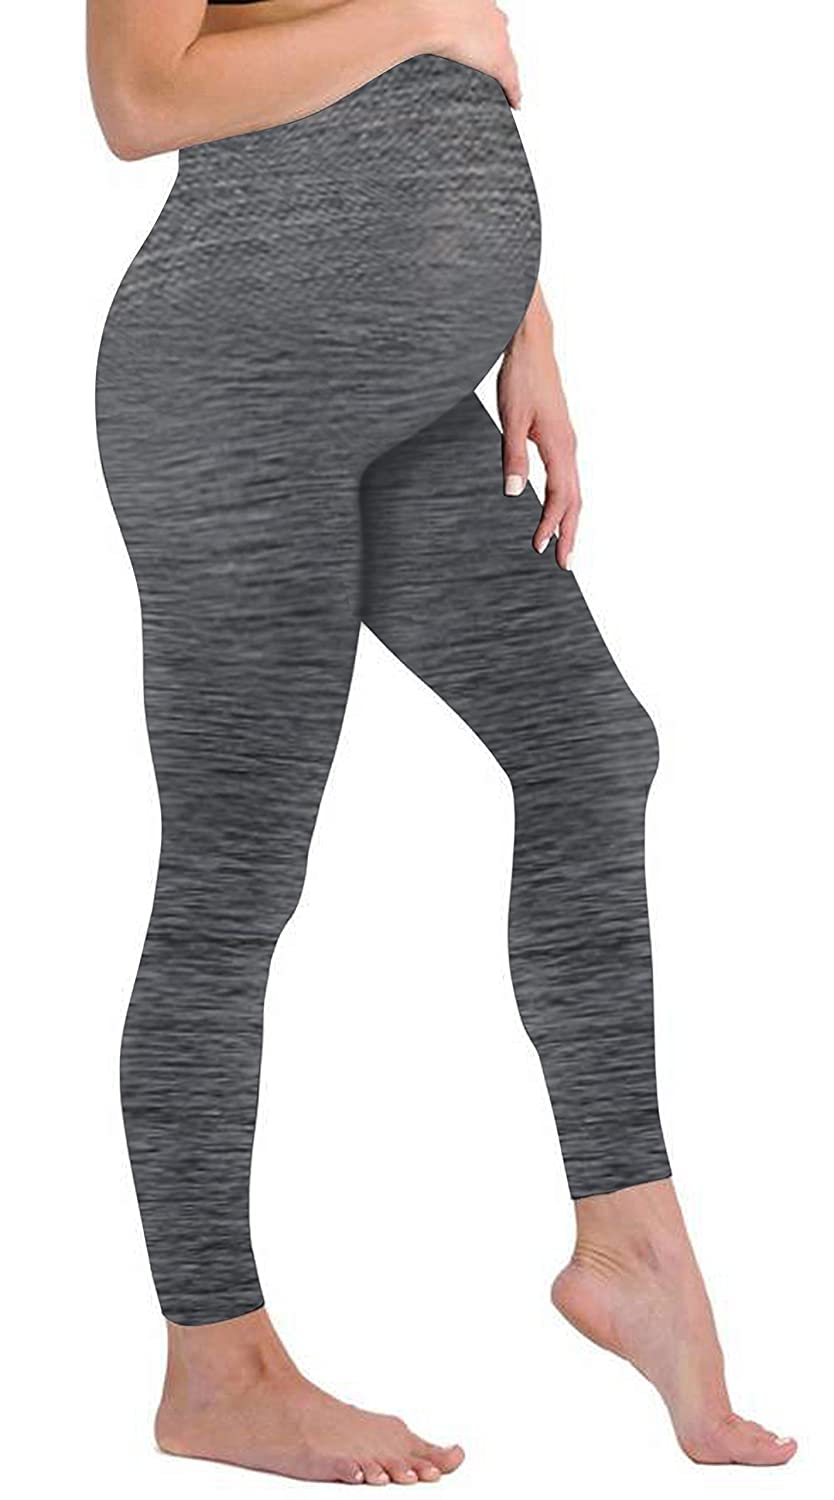 Maternity-Leggigngs Touch Me Maternity Leggings Black Navy Grey Soft Solid Stretch Seamless Tights One Size Fits All Active Wear Yoga Gym Clothes Light Grey Leggings